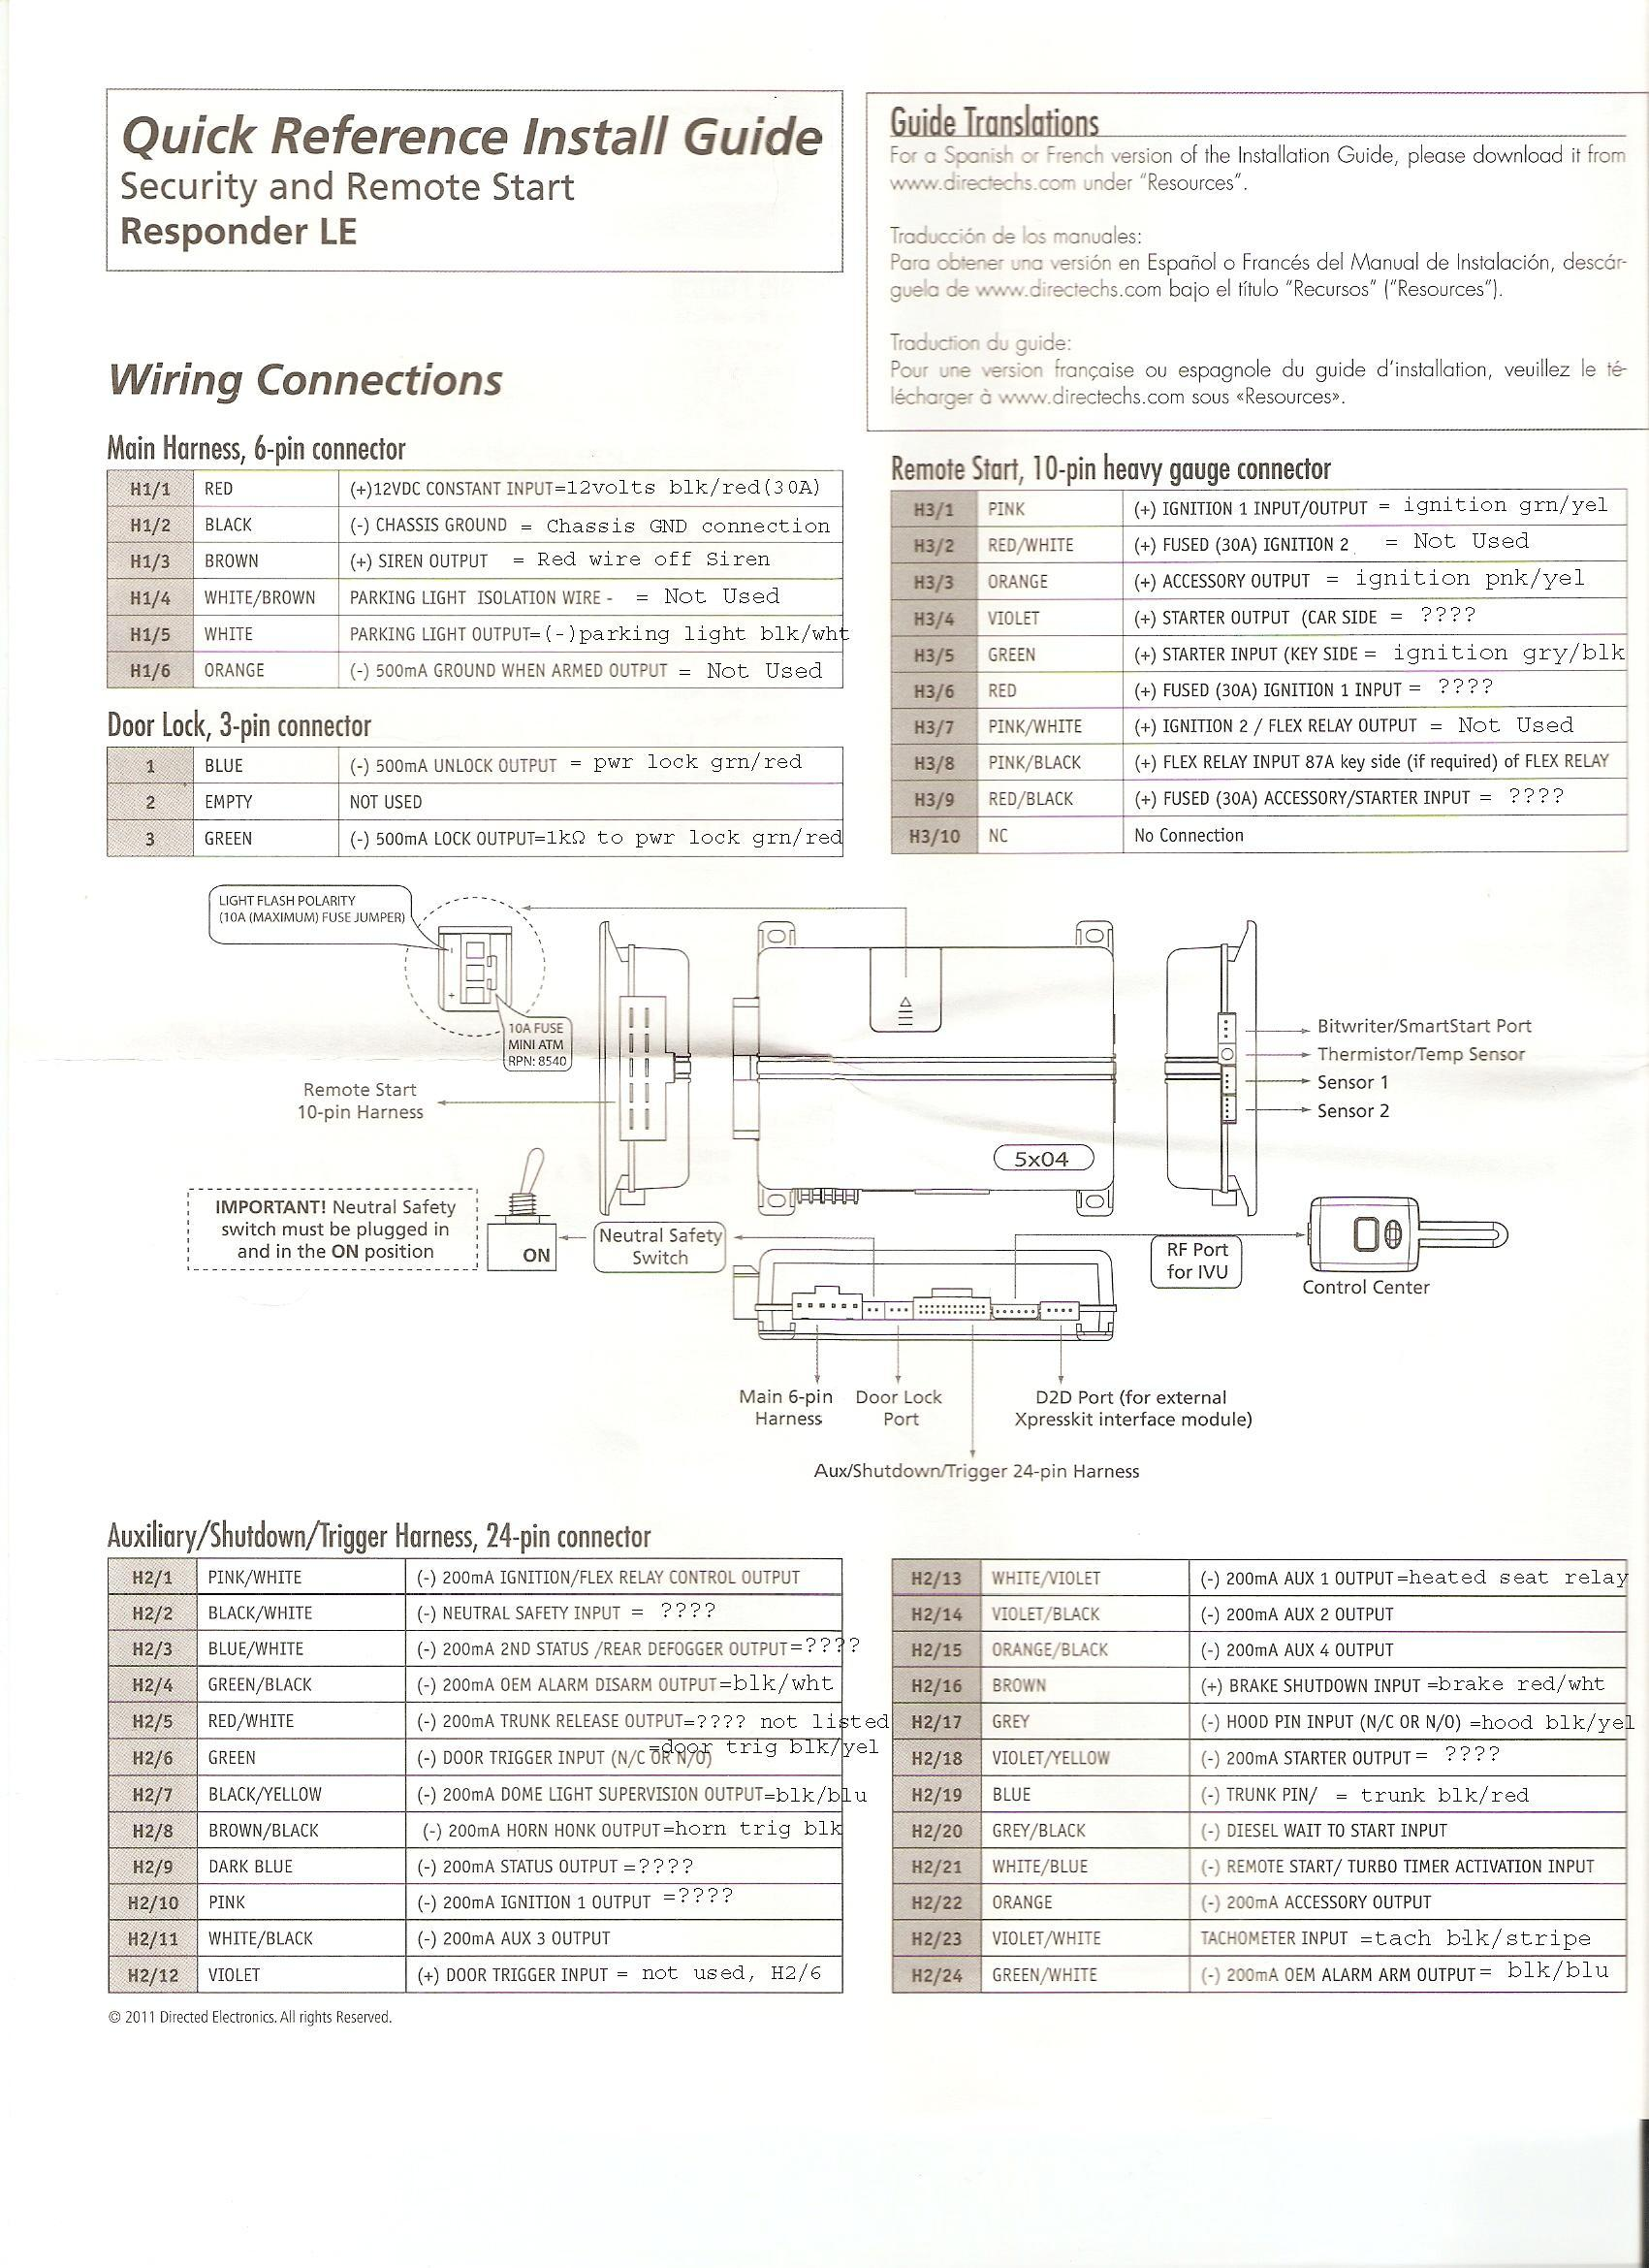 Python Alarm Wiring Diagram Image 991 Information Needed For Remote Start Install My Markup Of The Schematic Based On